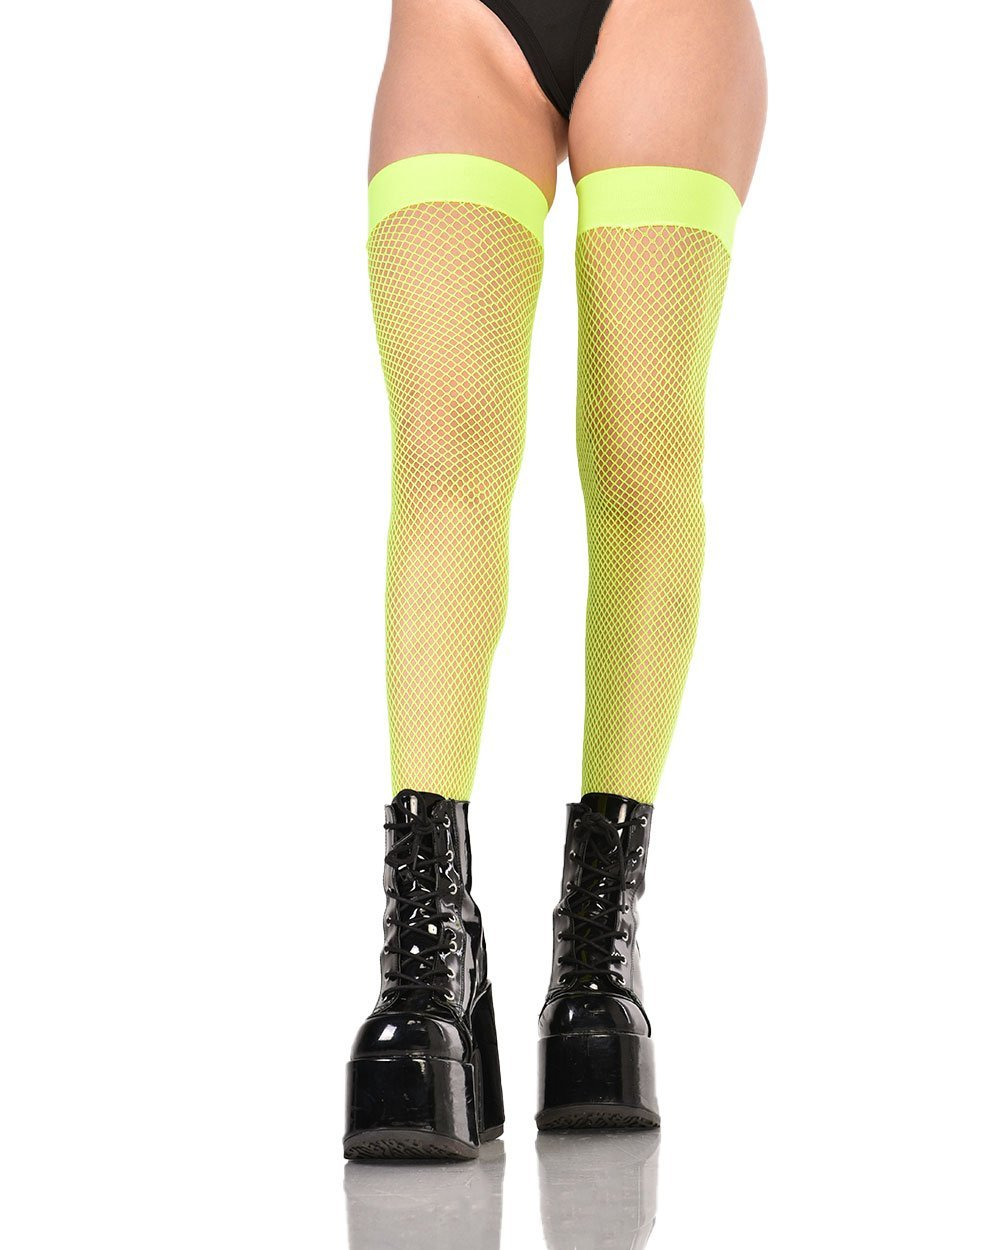 372da10e204a6 Plus Size Backseam Fishnet Pantyhose - EDM Sauce